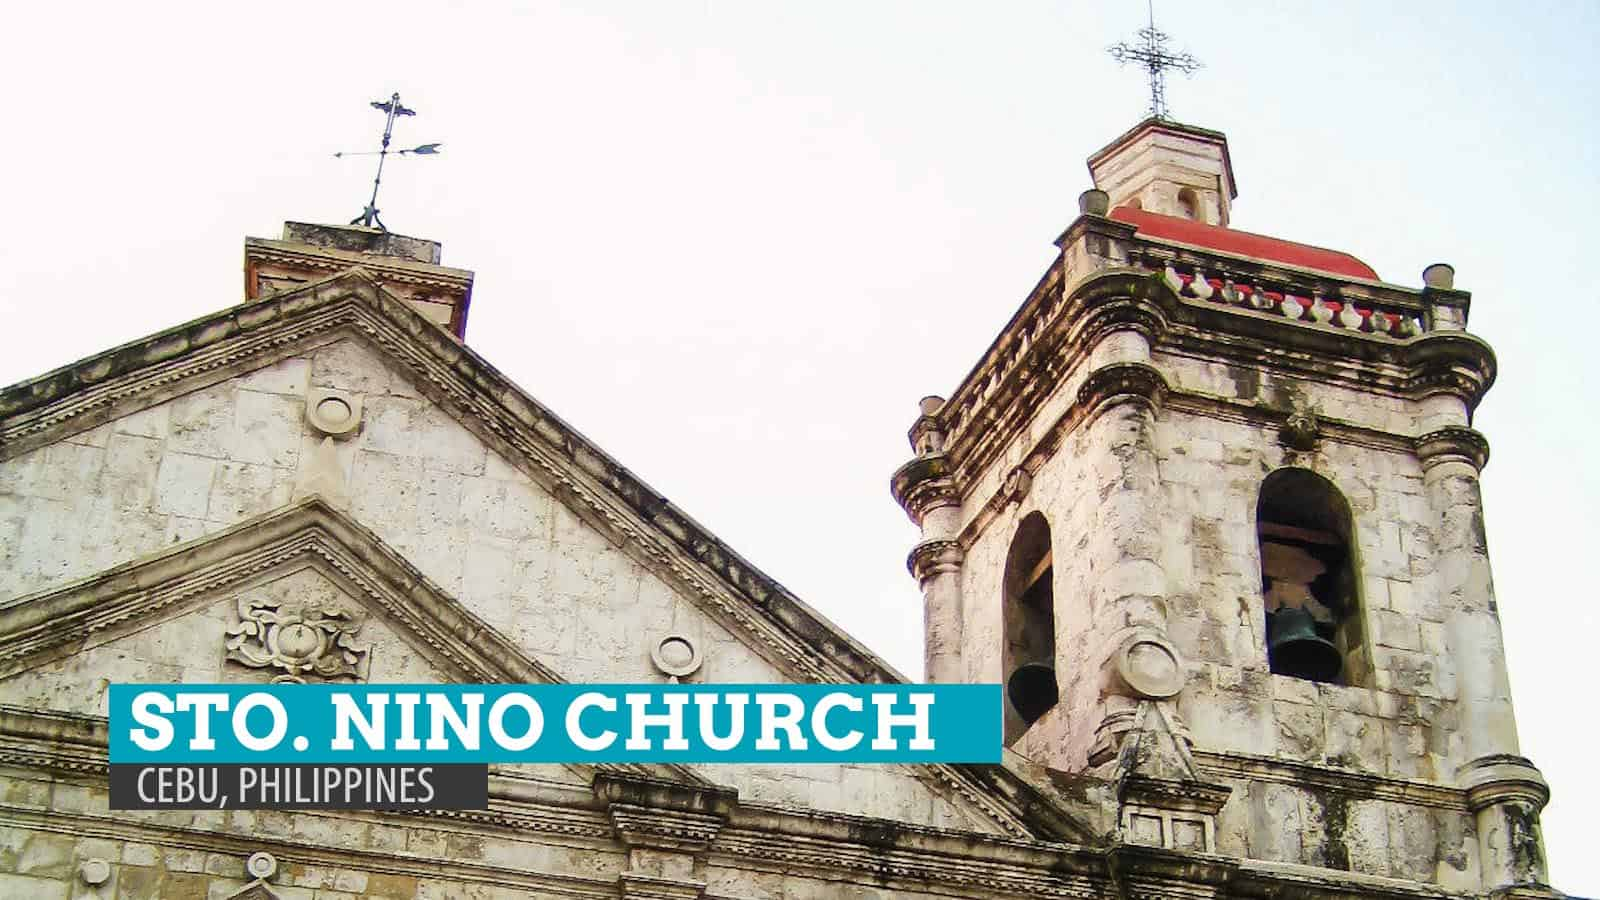 History of the Santo Nino Church in Cebu City, Philippines